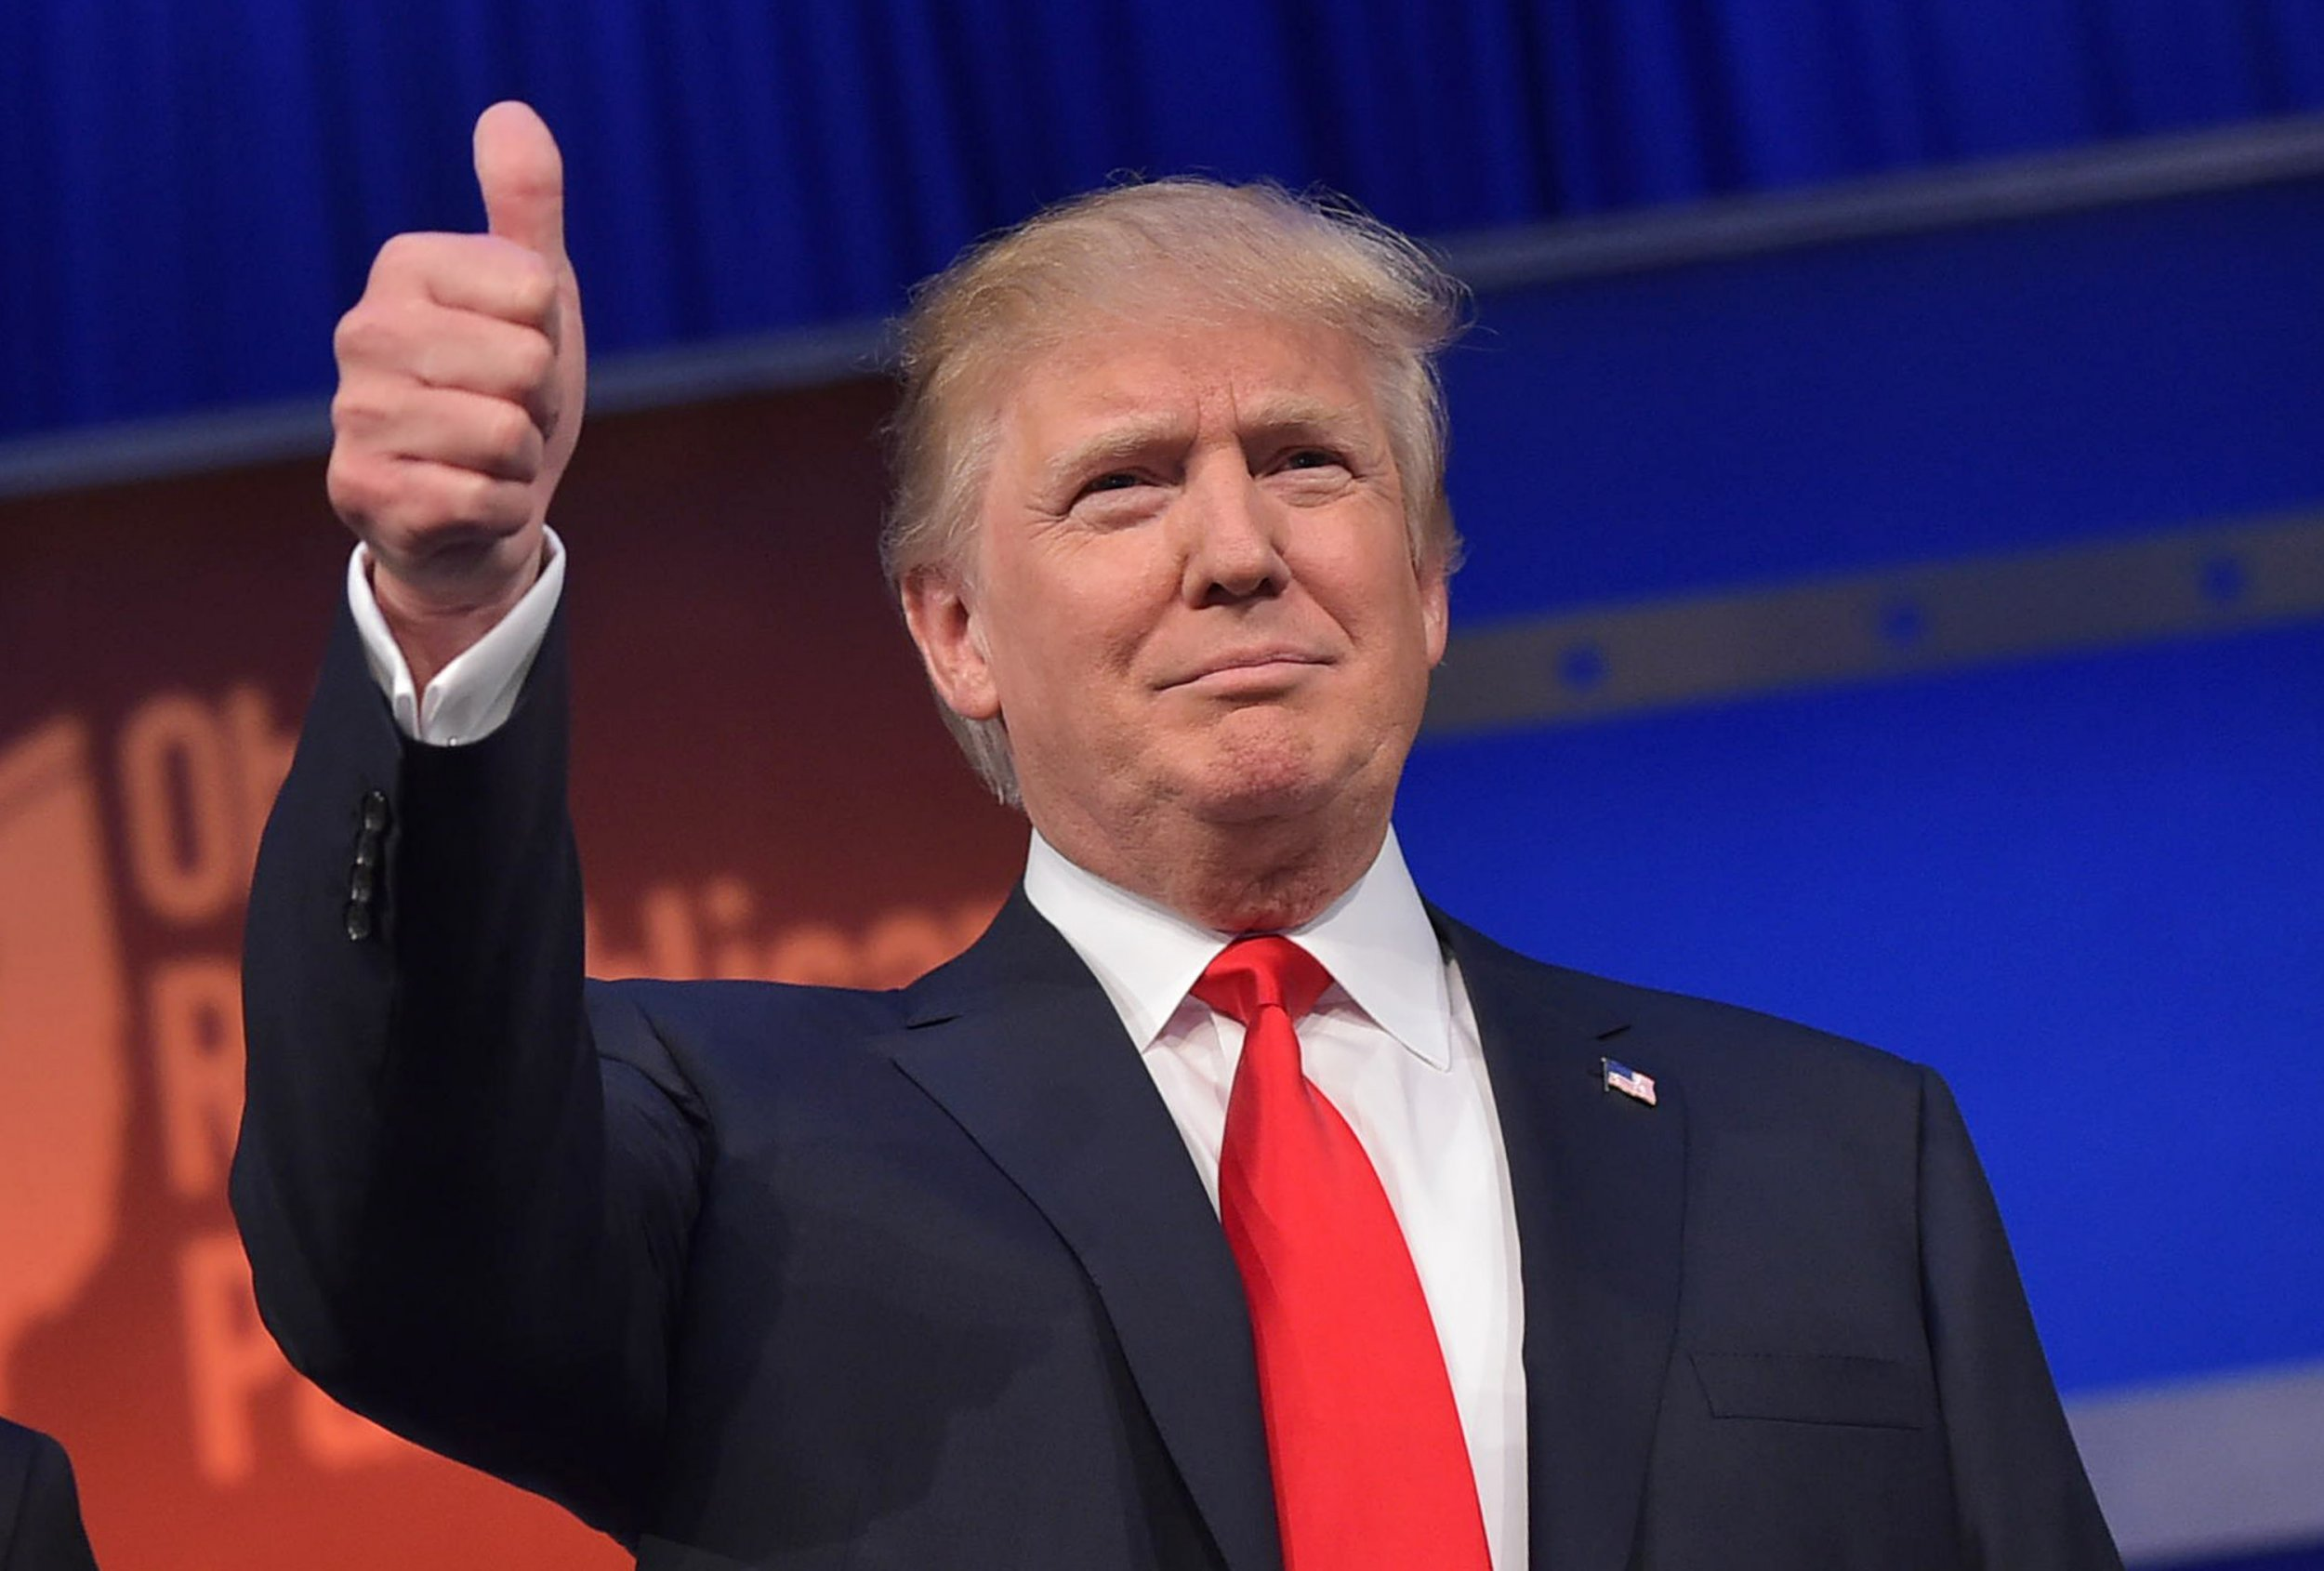 Republican candidate Donald Trump gives a thumbs-up.